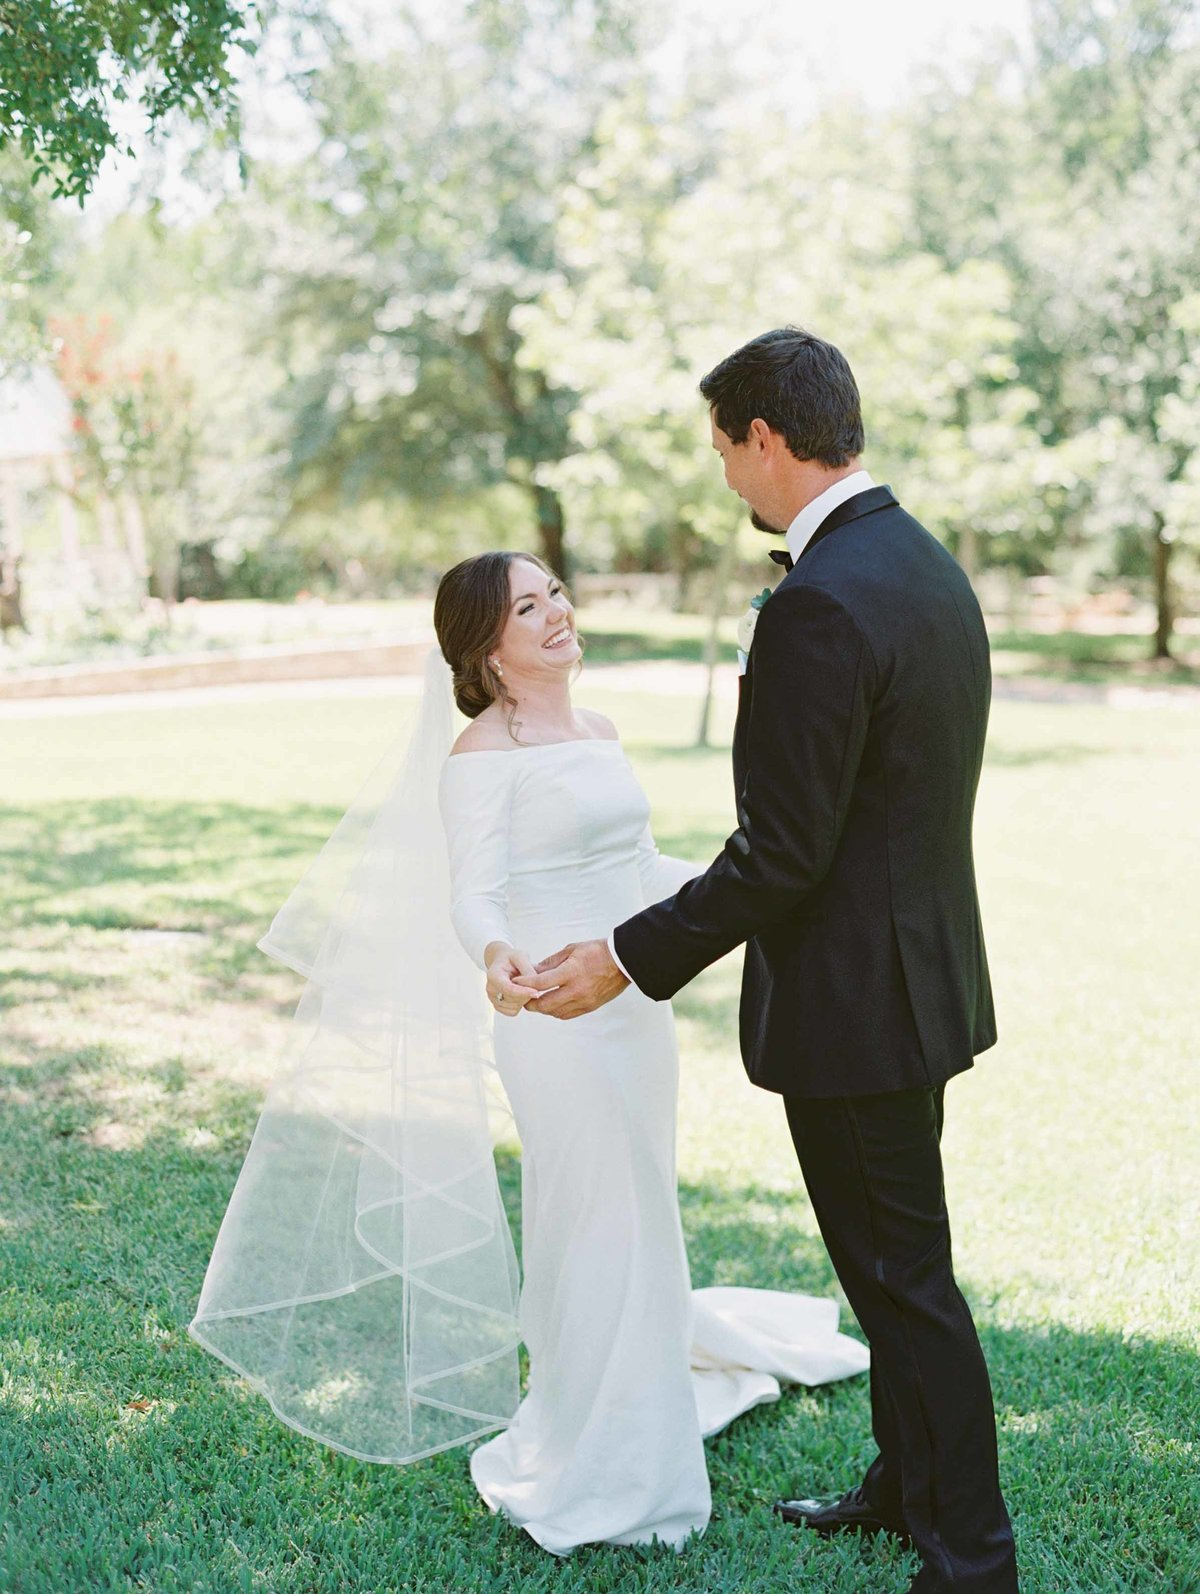 Angel_owens_photography_wedding_oliviarobert87